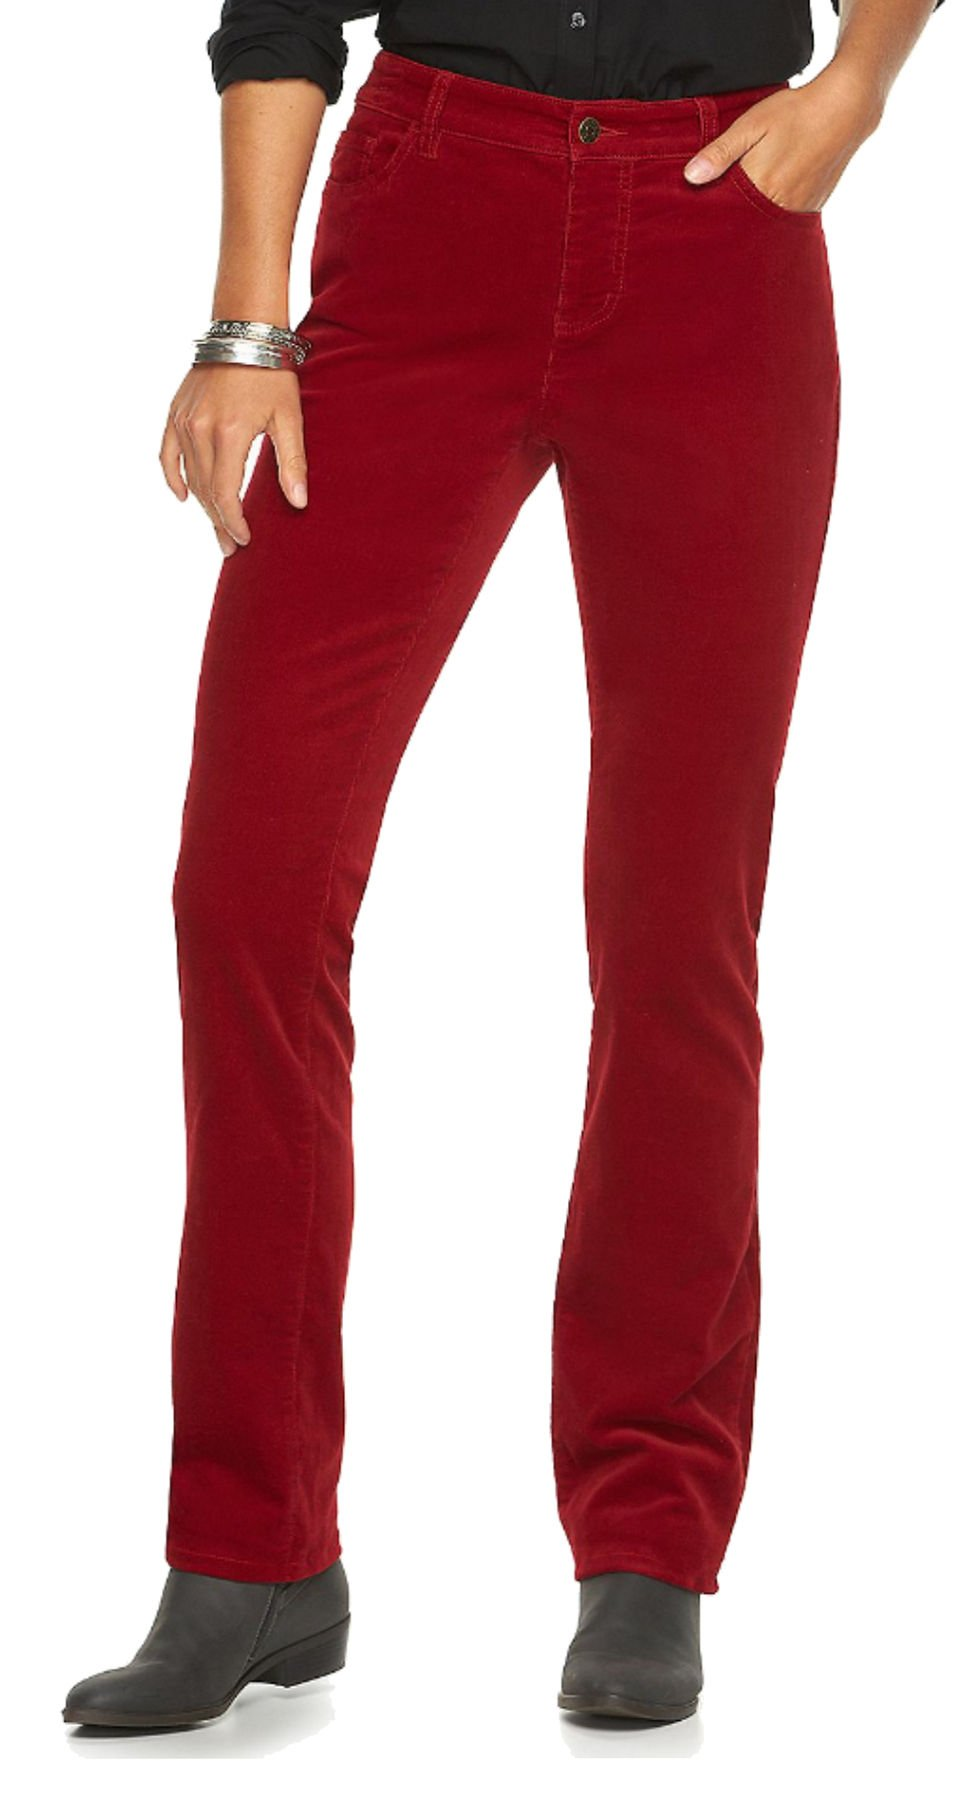 Chaps Women's Fine Corduroy Slimming Fit Pants (16 Short, Heritage Red)